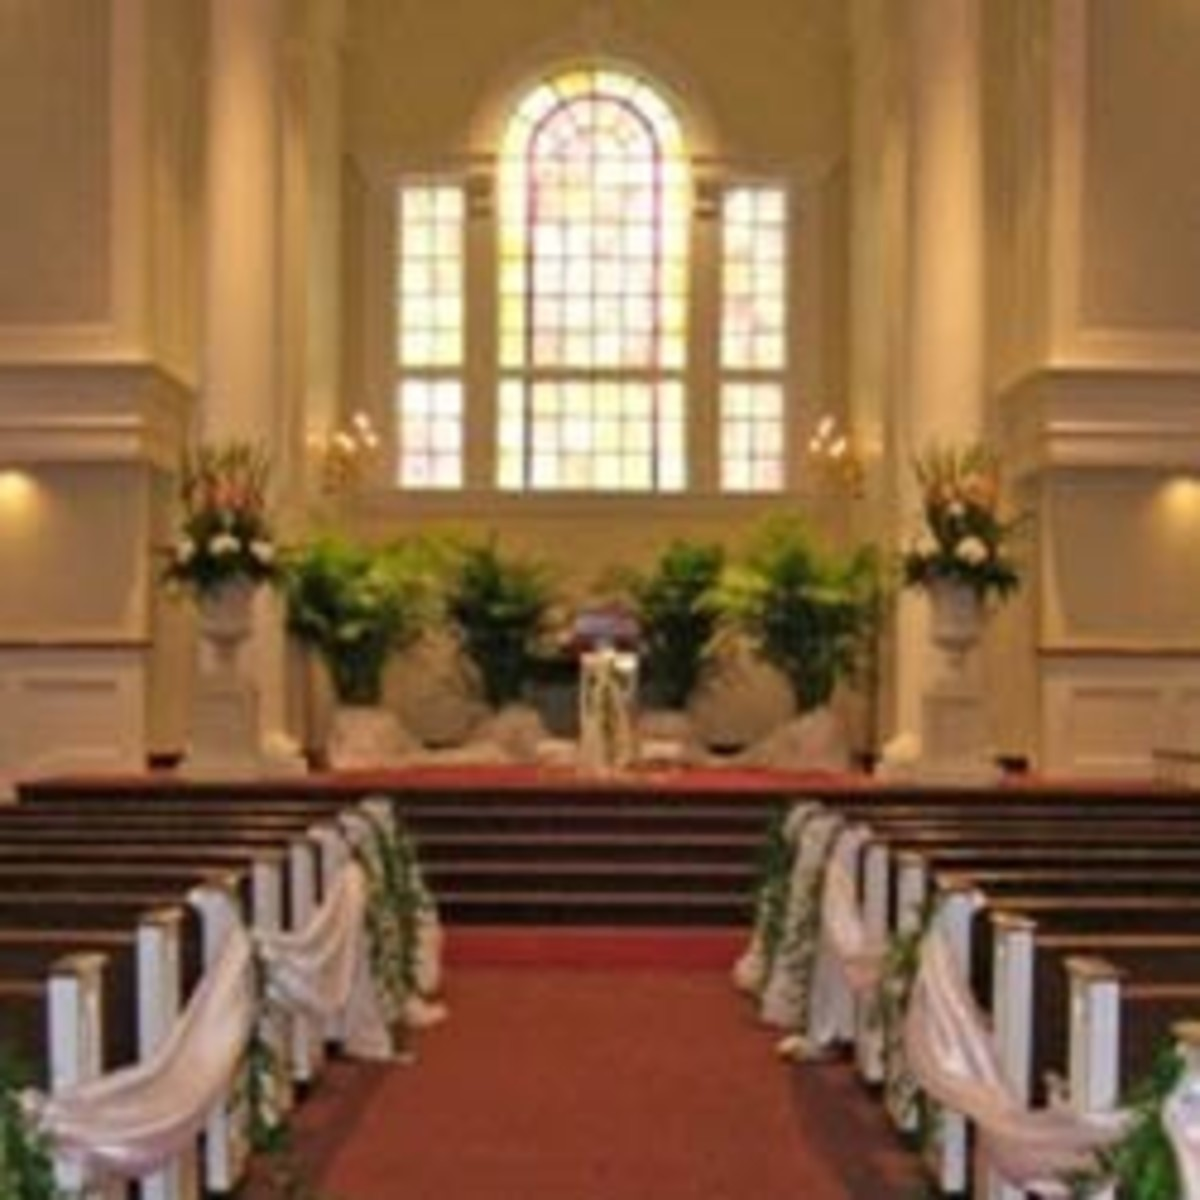 Church decorated for a wedding with pew swags, rented plants, and a couple of altar arrangements.